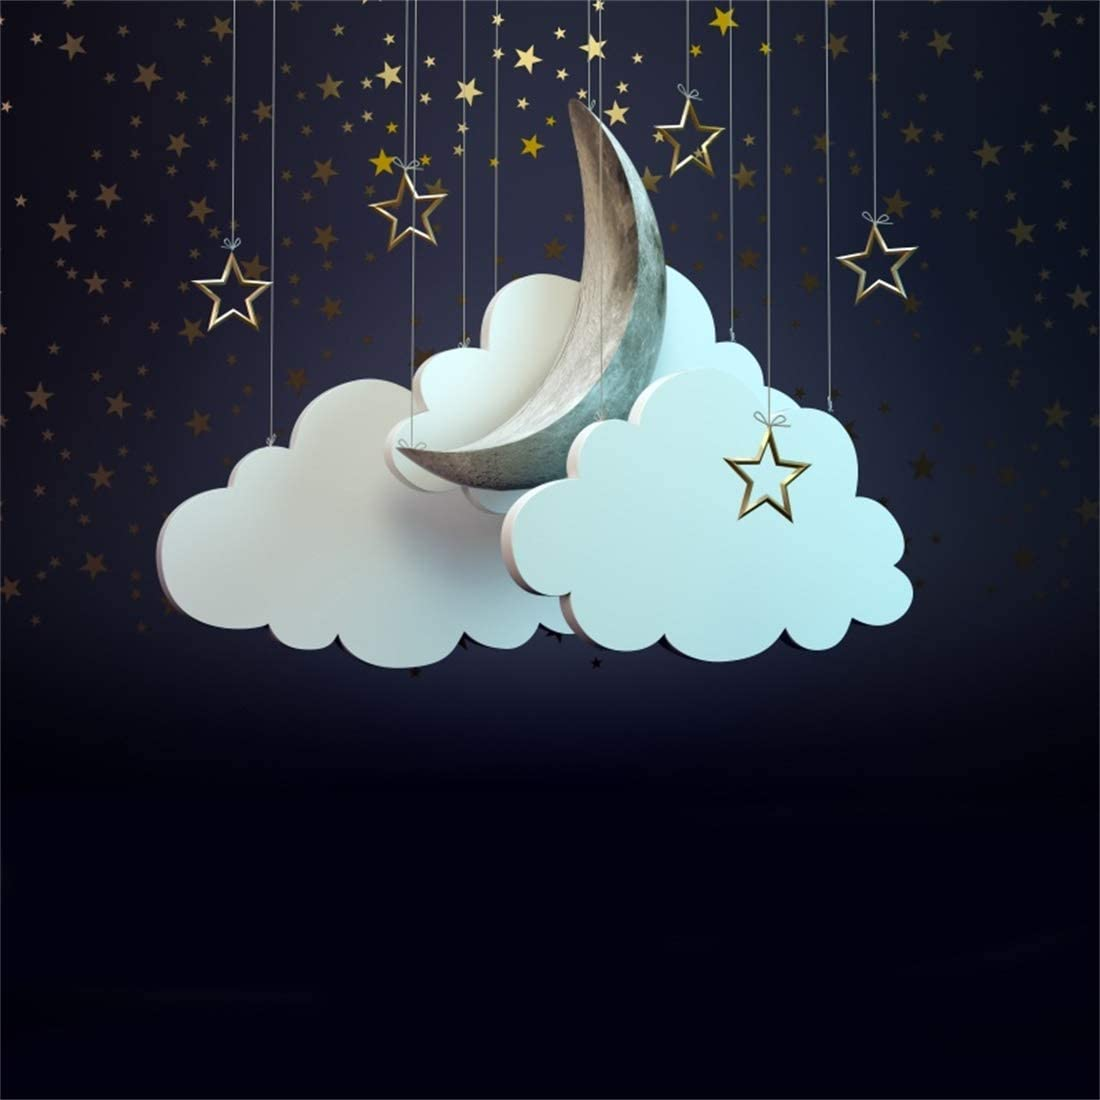 Yeele Moon Backdrops 9x9ft //2.7 X 2.7M Night Sky Cloud Stars Pictures Adult Artistic Portrait Photoshoot Props Photography Background